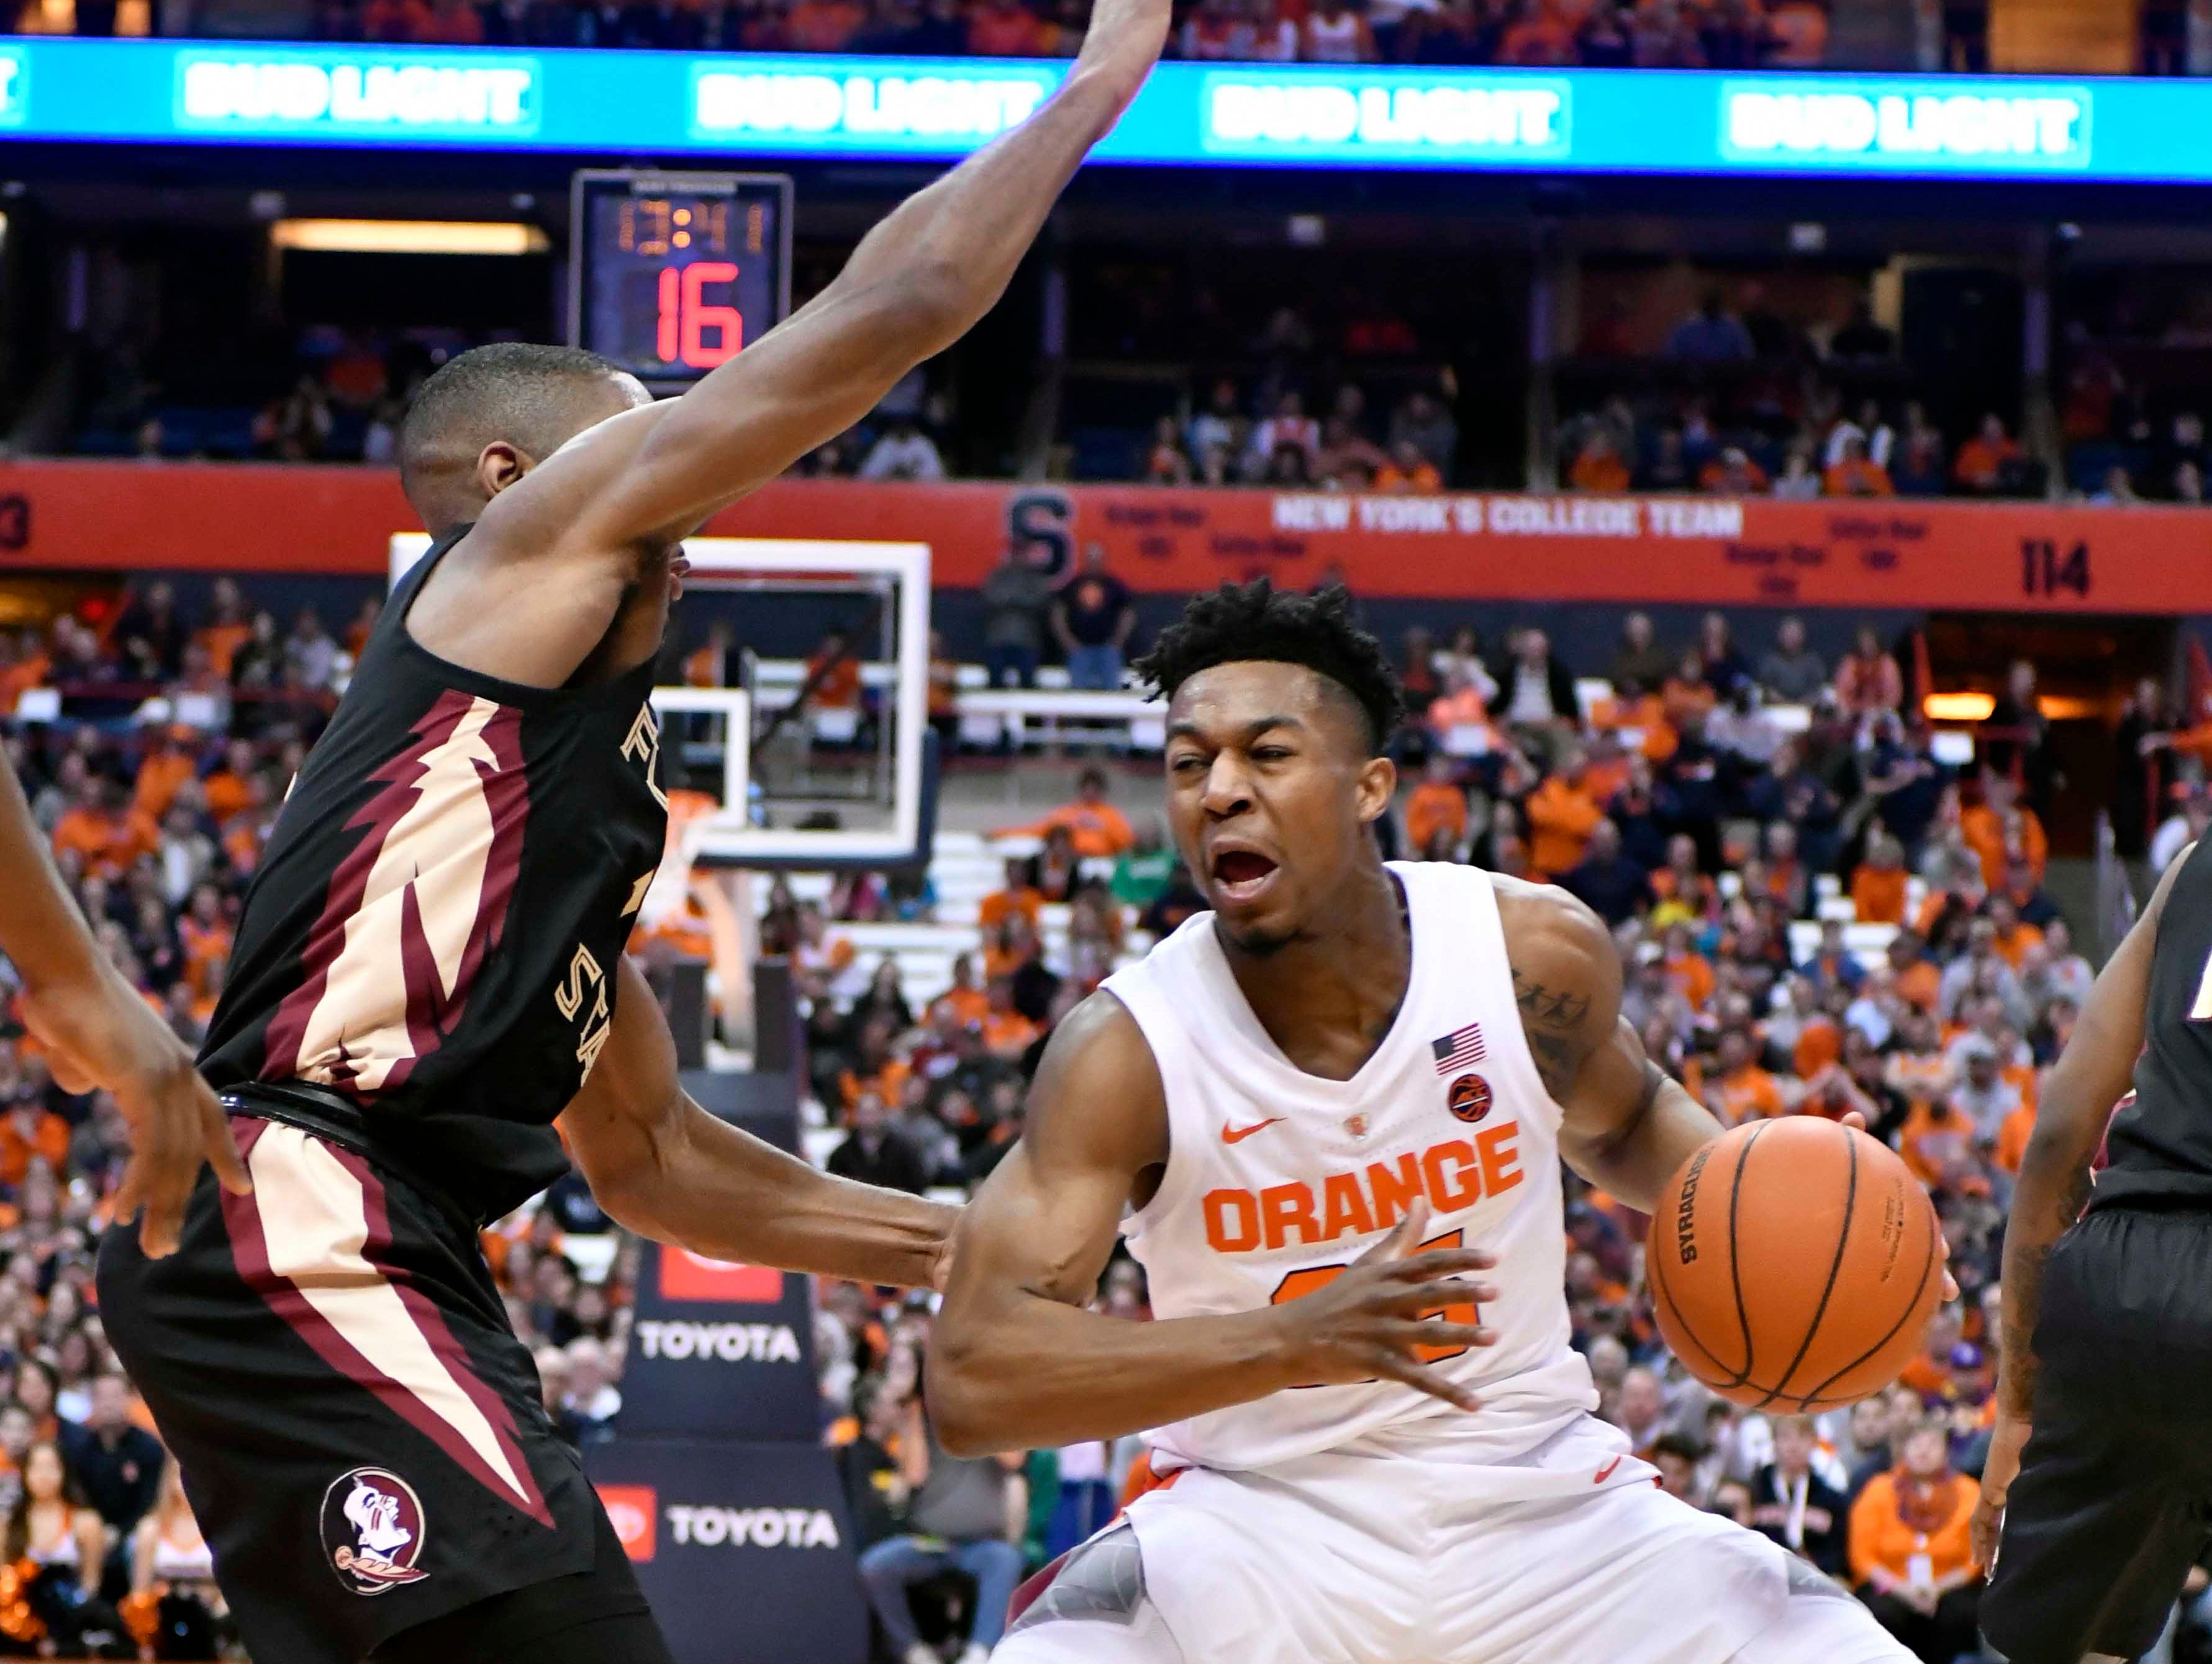 Feb 5, 2019; Syracuse, NY, USA; Syracuse Orange guard Tyus Battle (25) pulls up his dribble as Florida State Seminoles guard Trent Forrest (3) defends in the second half at the Carrier Dome. Mandatory Credit: Mark Konezny-USA TODAY Sports